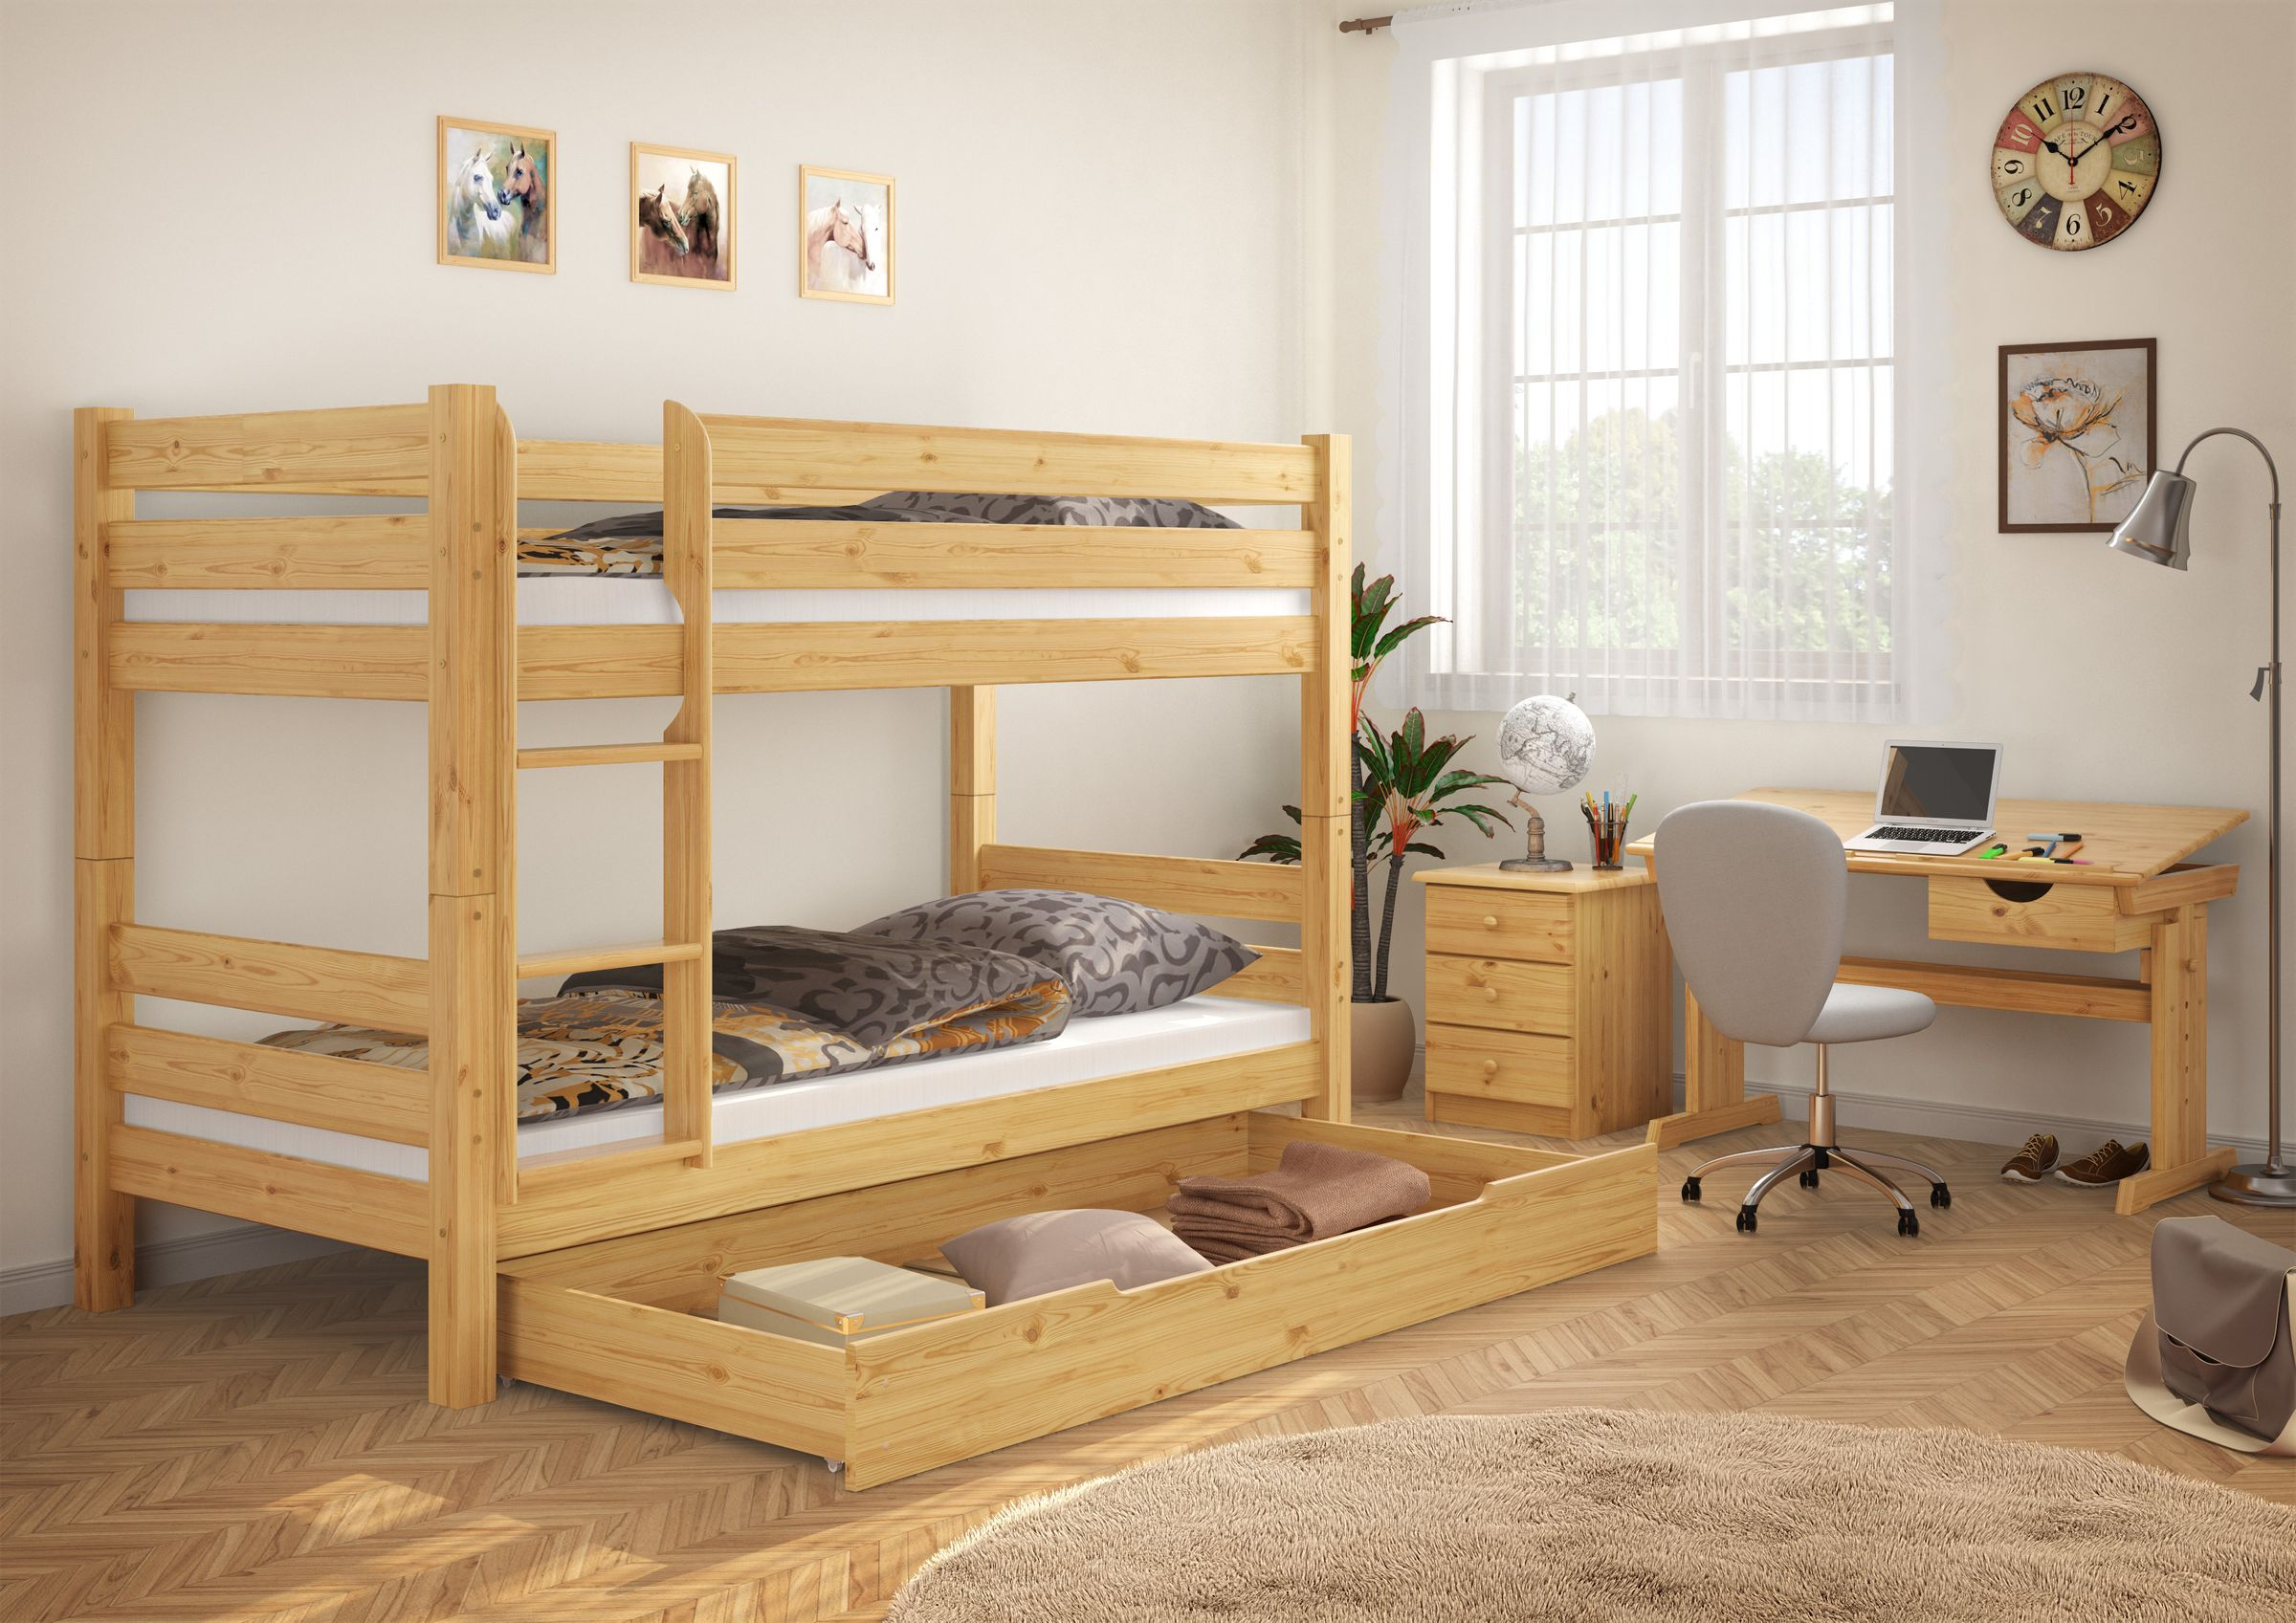 Simple Pine Bunk Bed With Mattresses 90x200 On Rigid Slats 1 Storage Drawers 60 11 09ni100ms1 Ceres Webshop